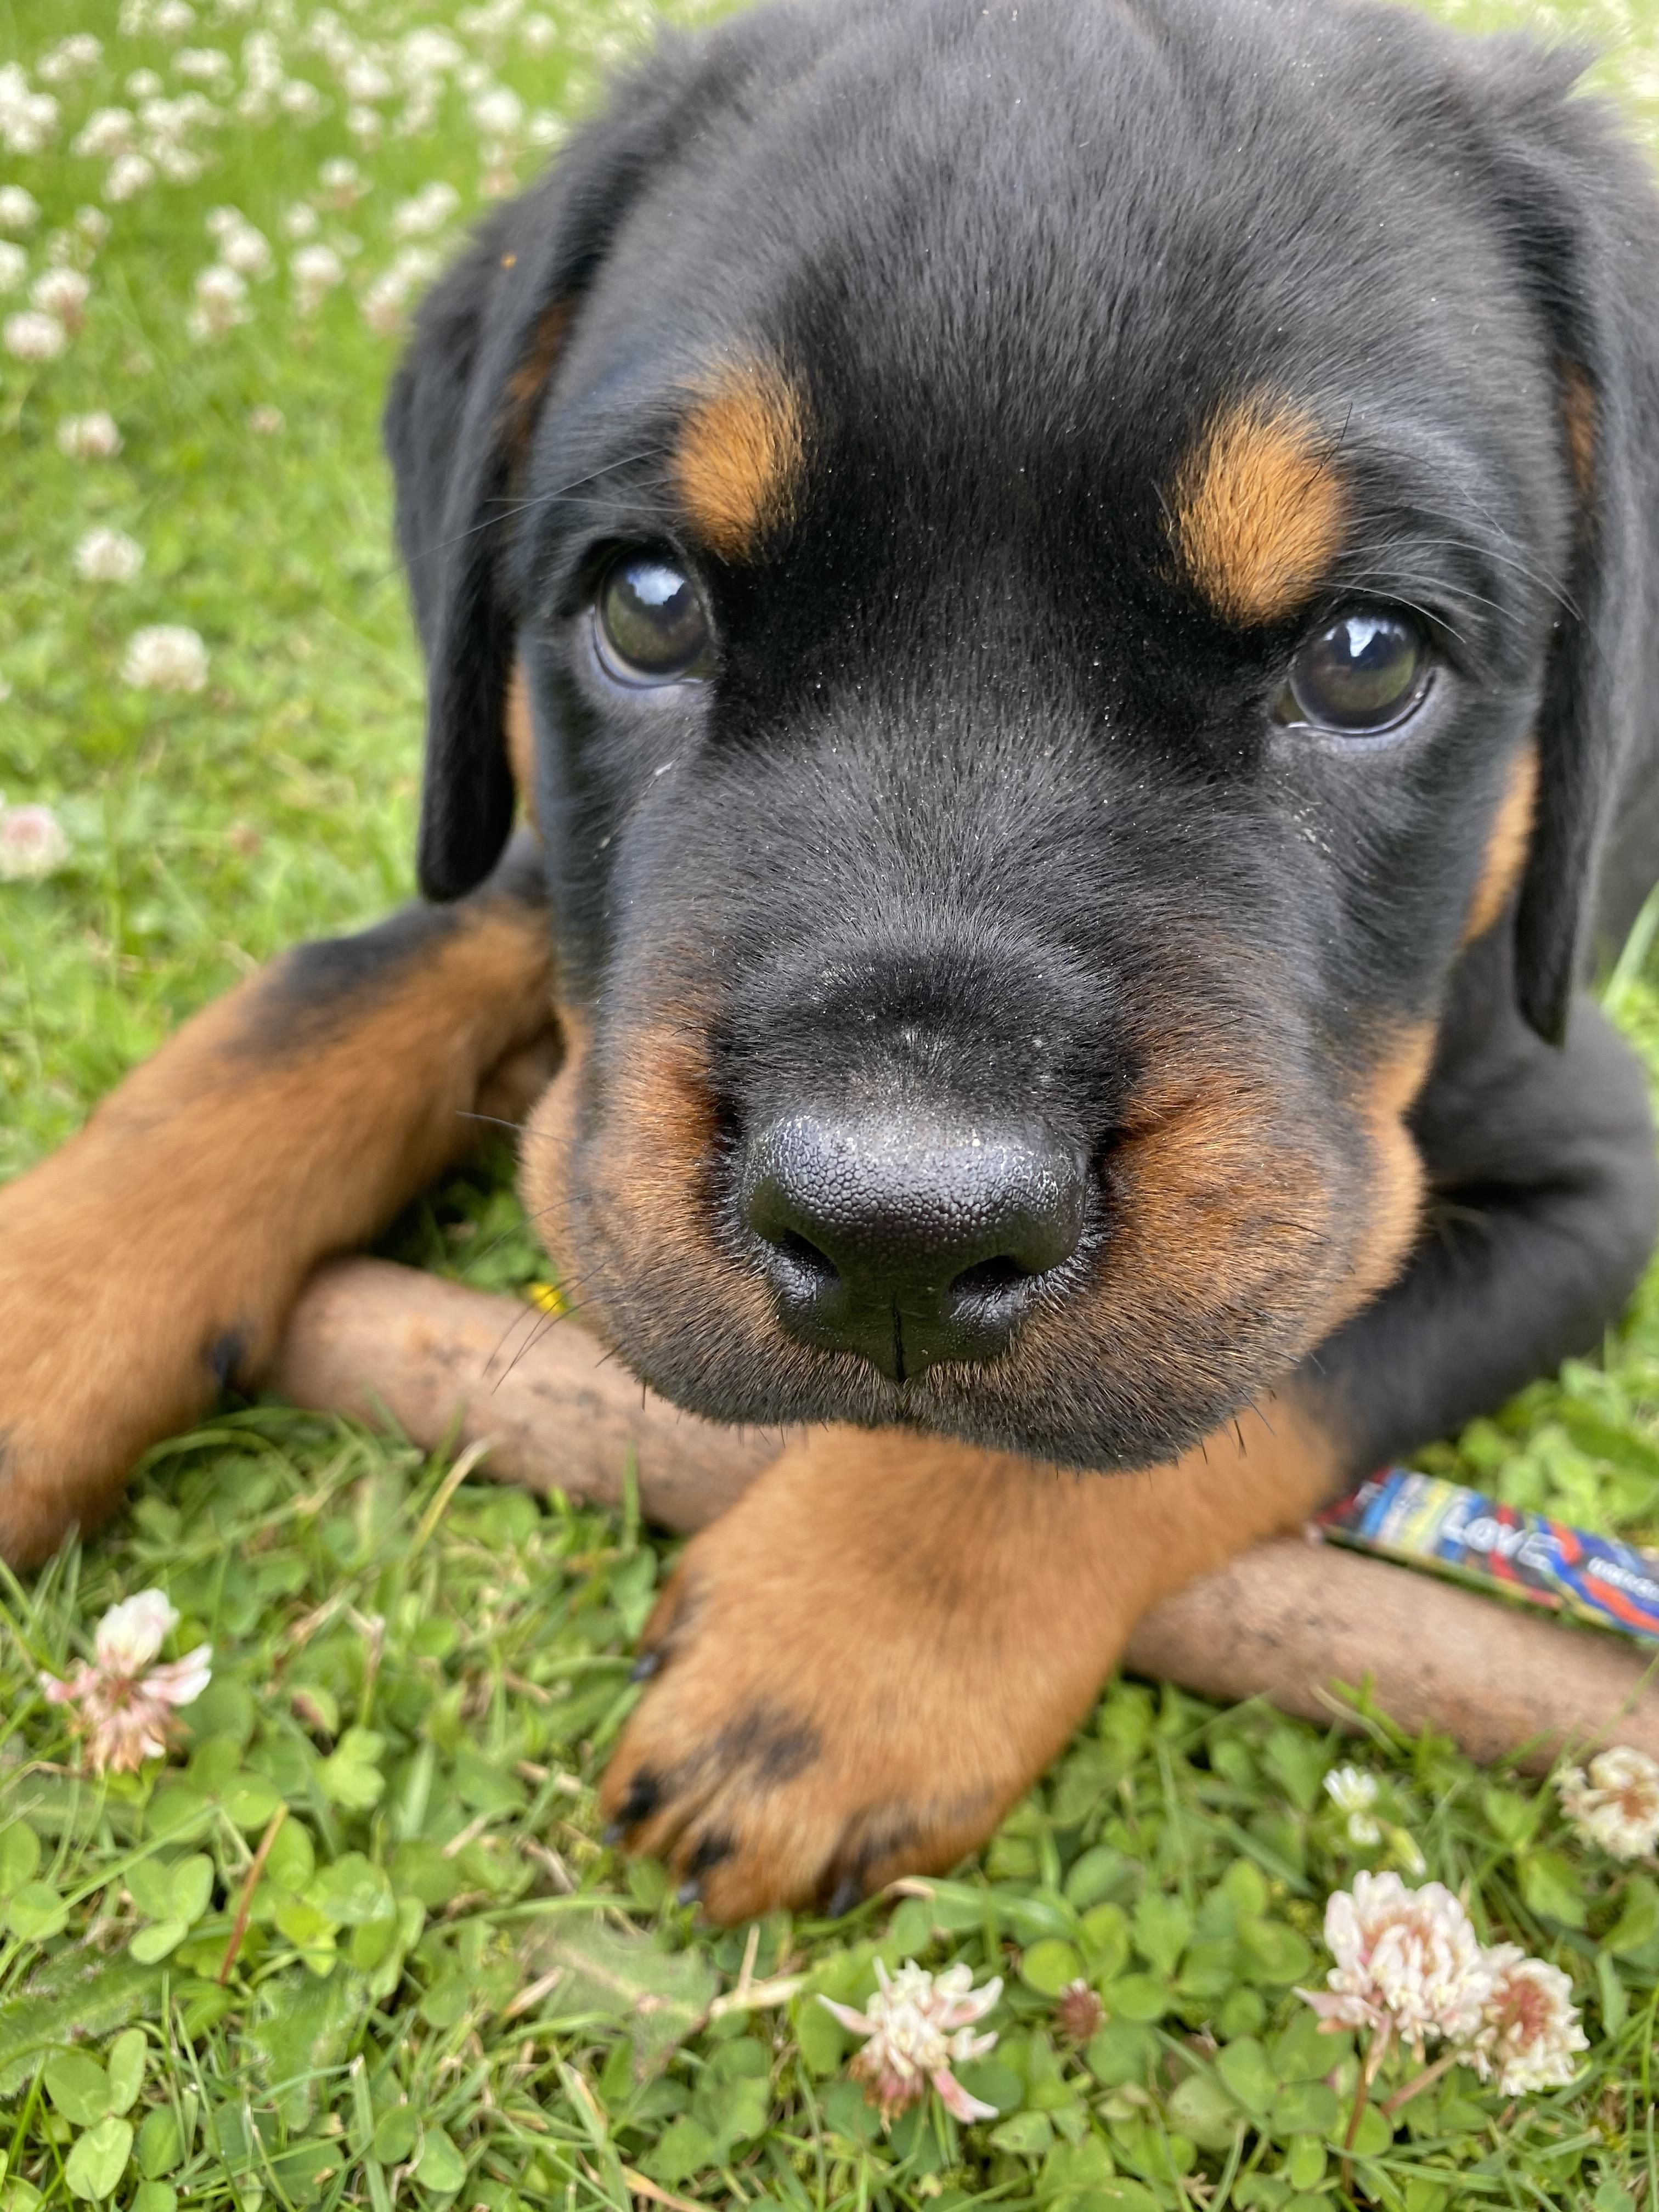 This Is My New Puppy Adorable Rottweilers In 2020 Rottweiler